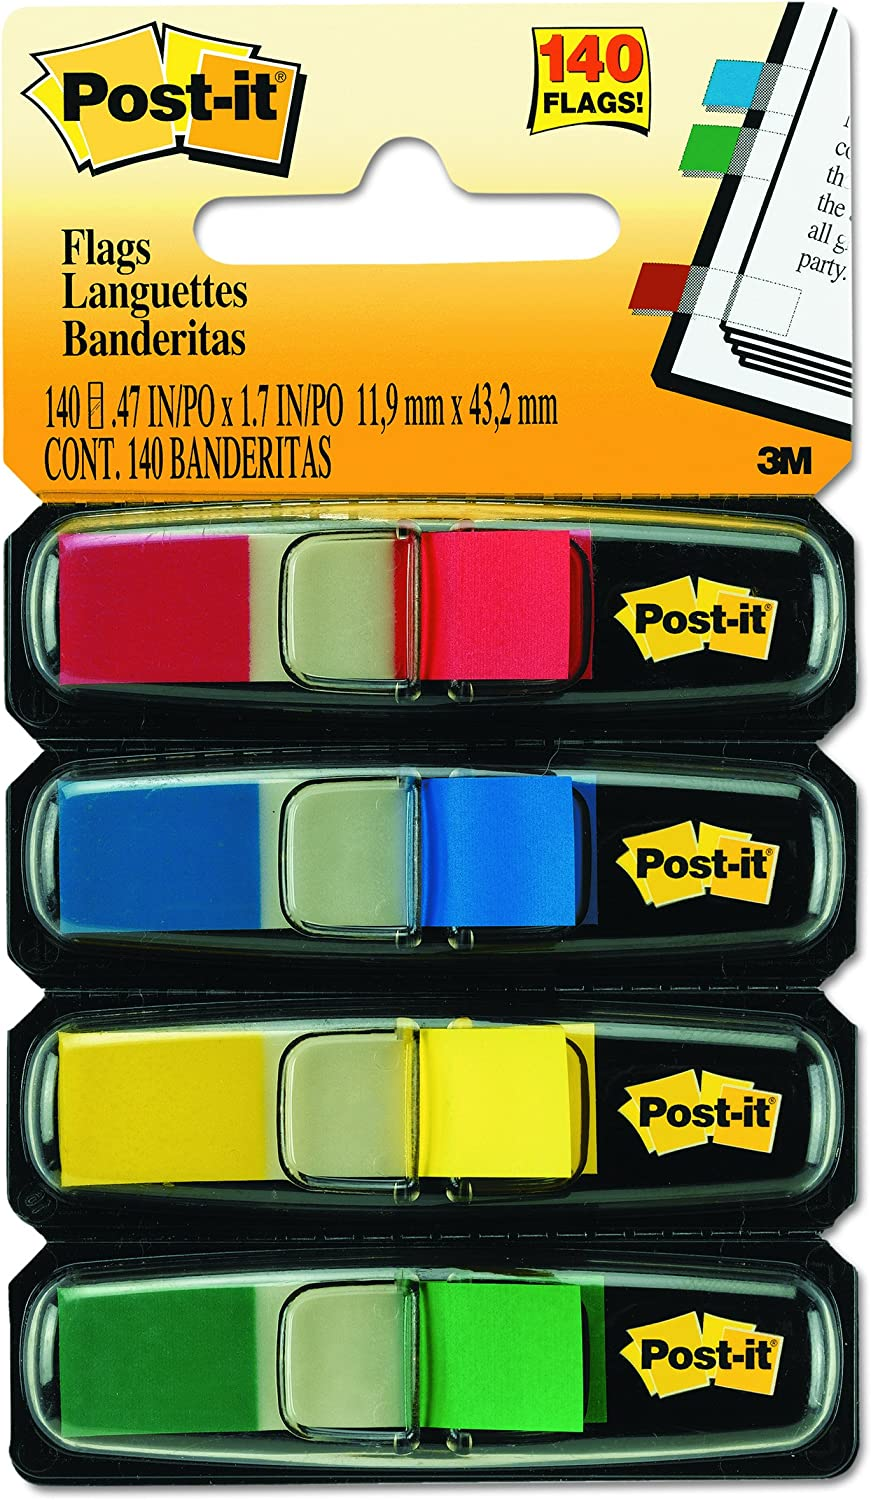 Post-it Flags, Assorted Primary Colors, Sticks Securely, Removes Cleanly.47 in. Wide, 35/Dispenser, 4 Dispensers/Pack, (683-4)